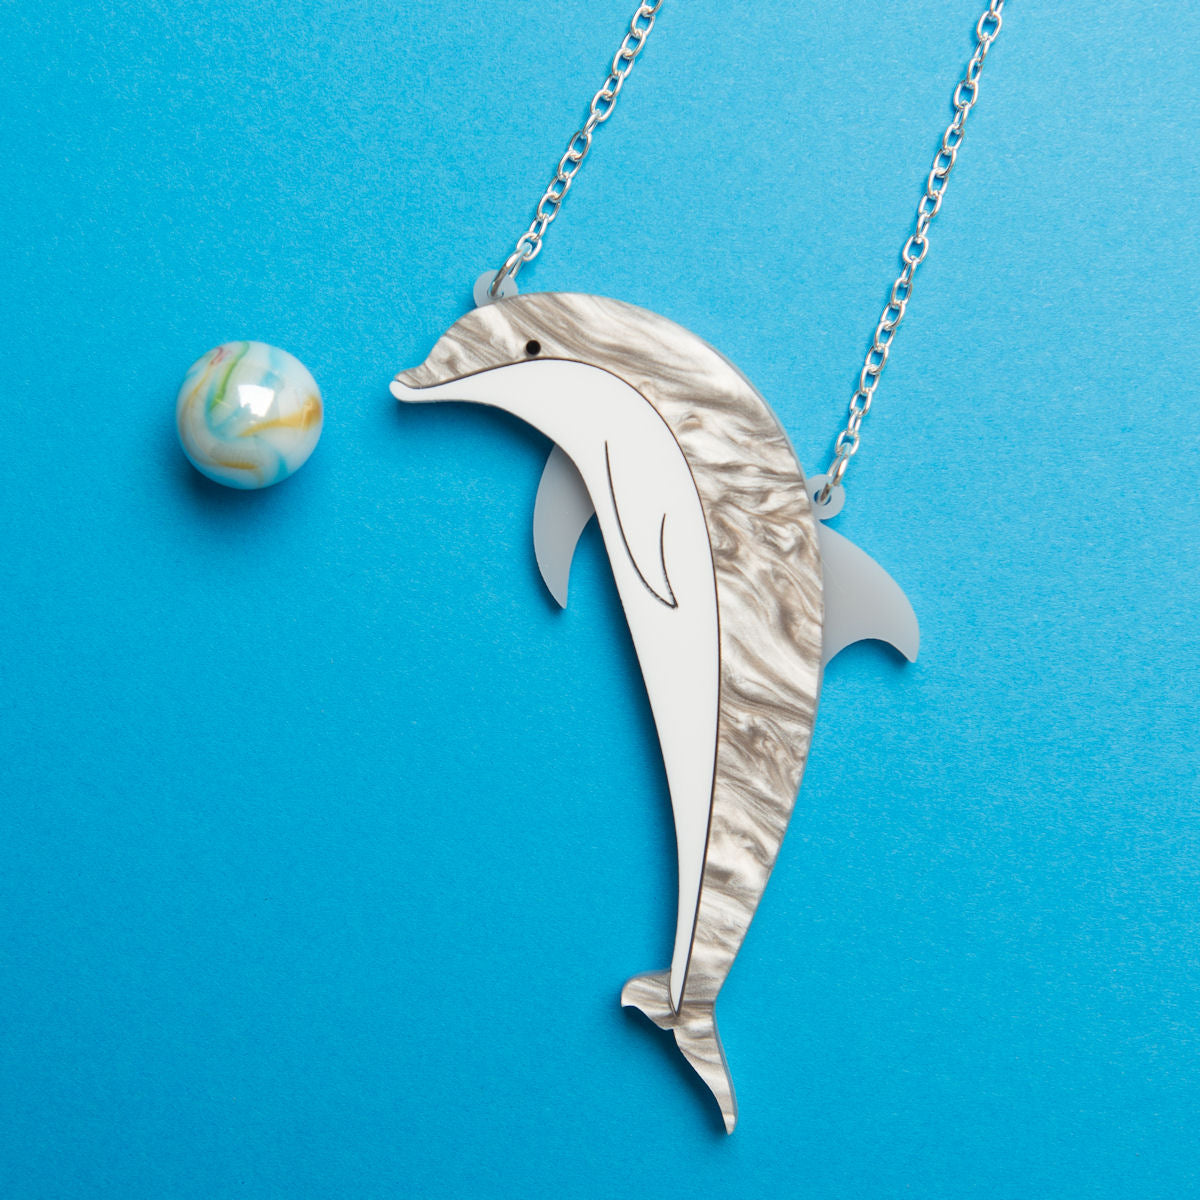 Sugar & Vice Dolphin necklace social media